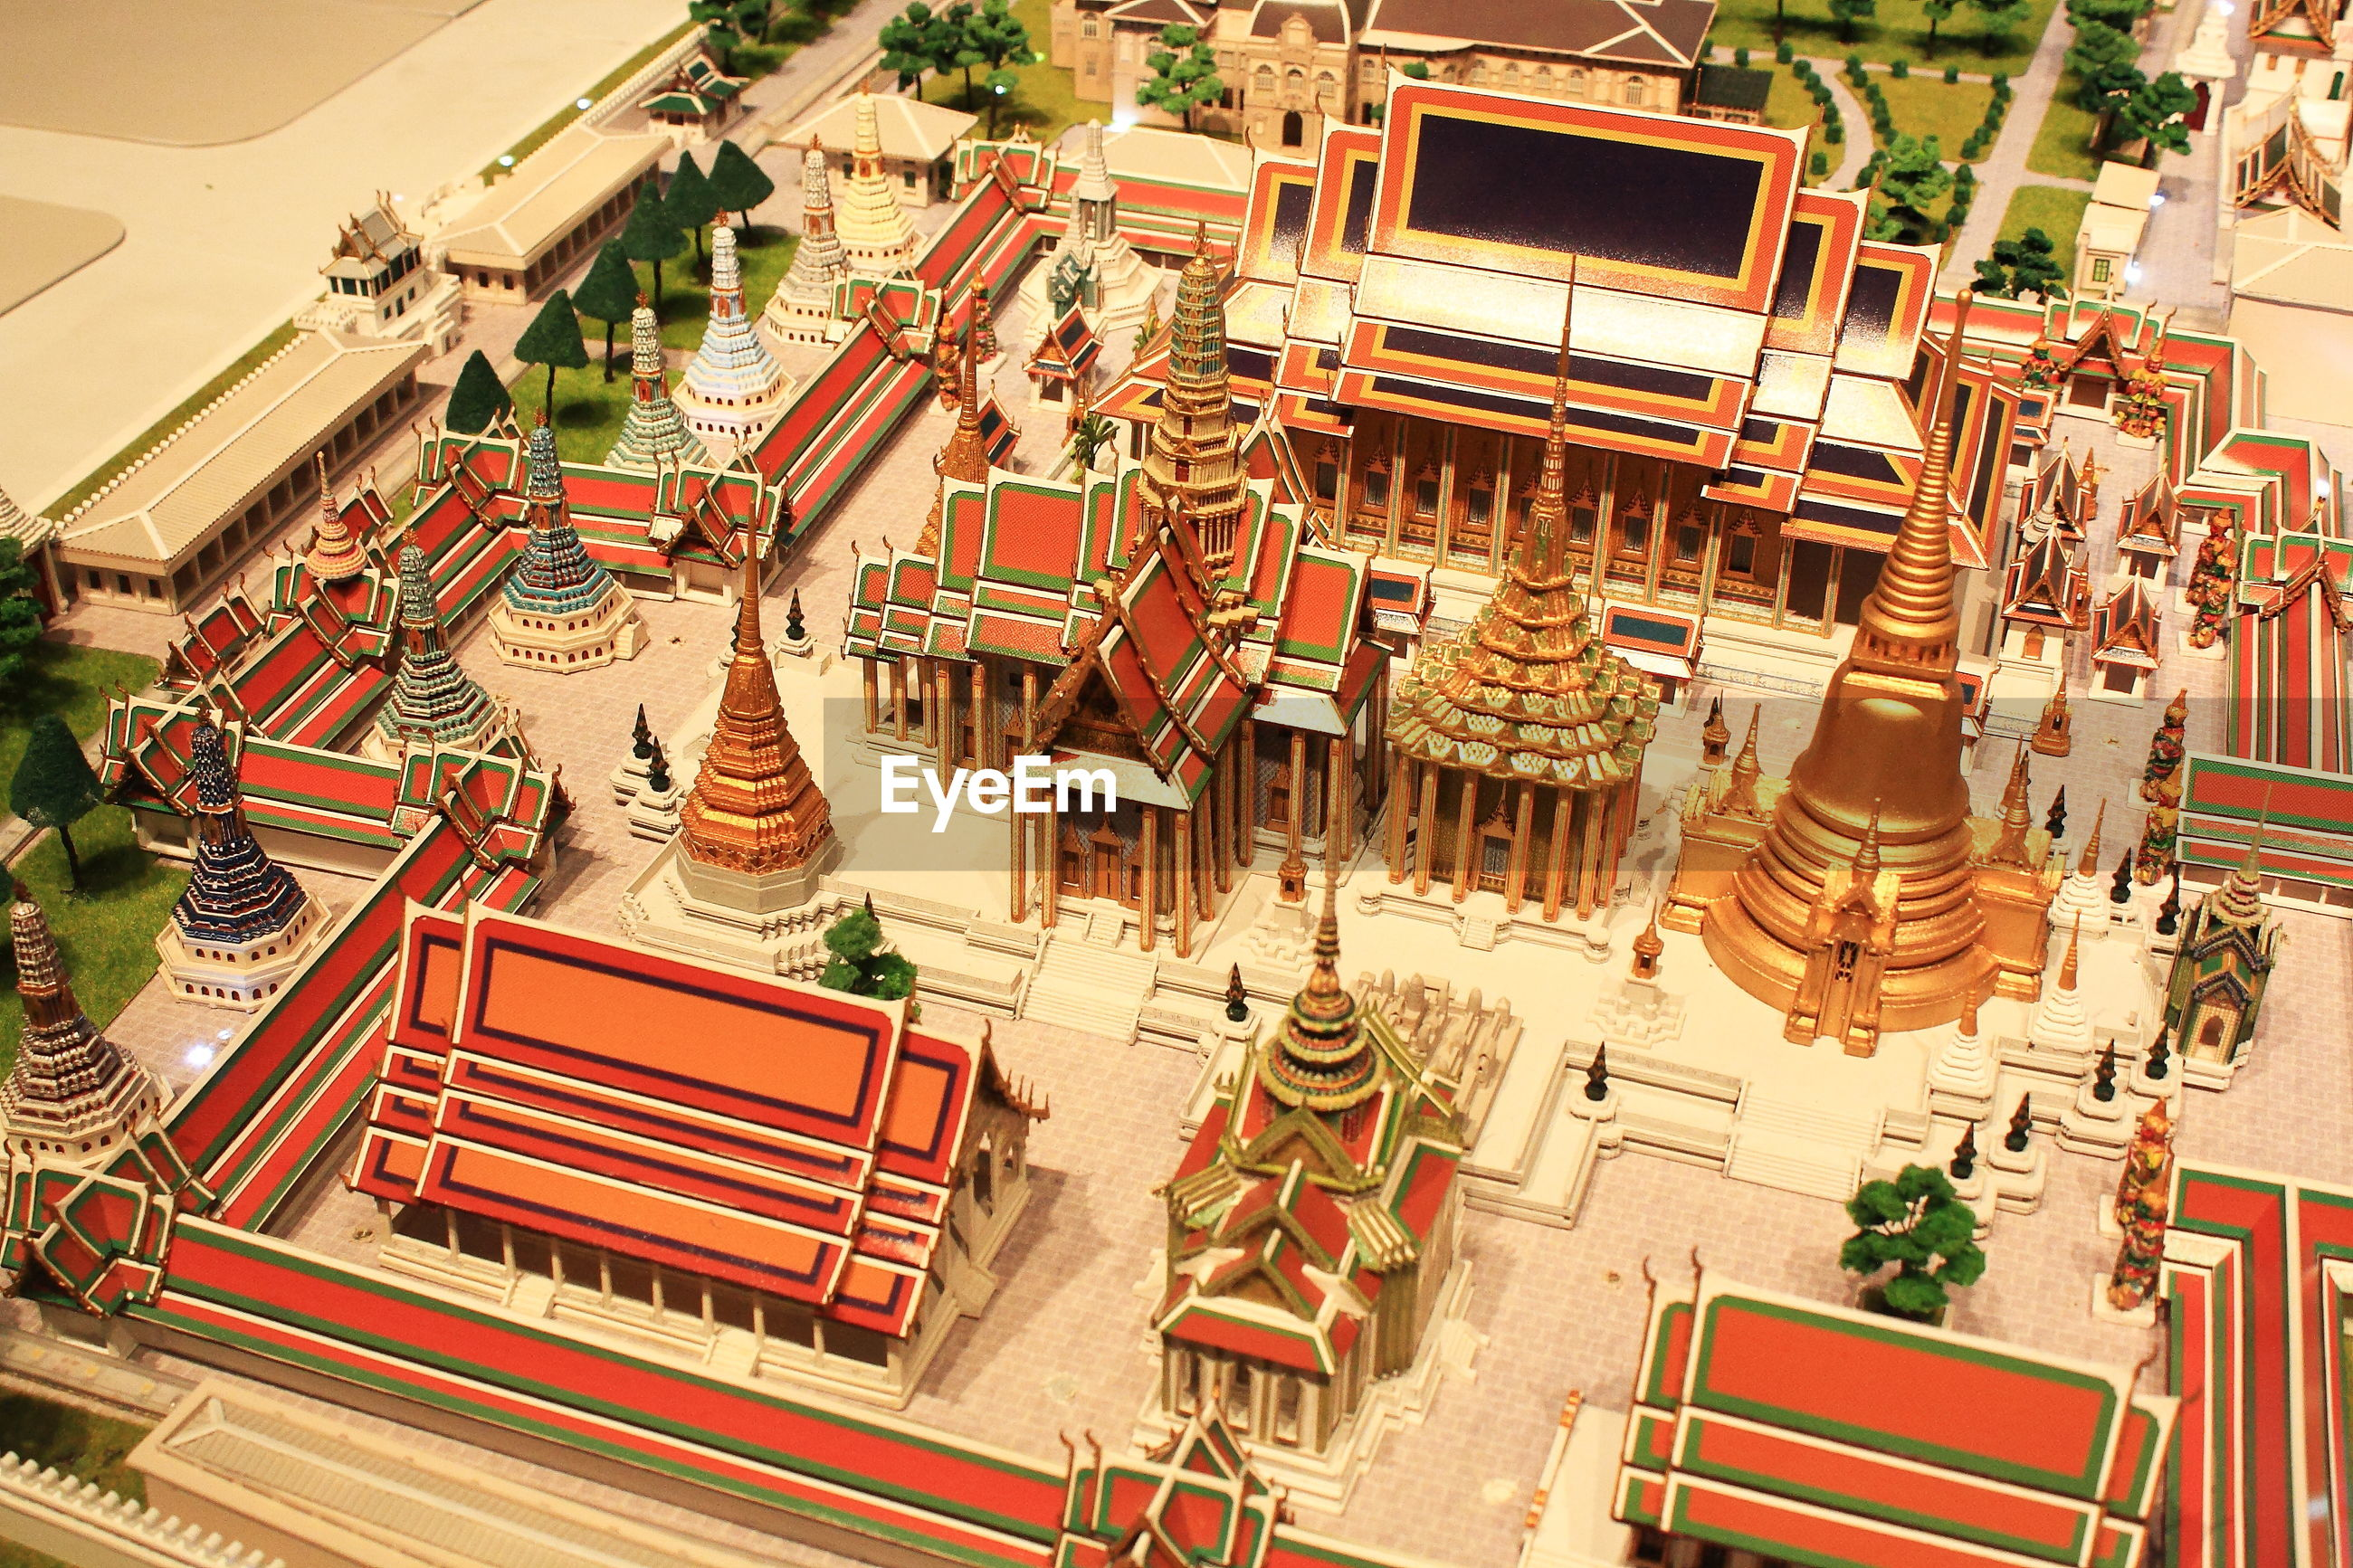 High angle view of wat phra kaew model at museum